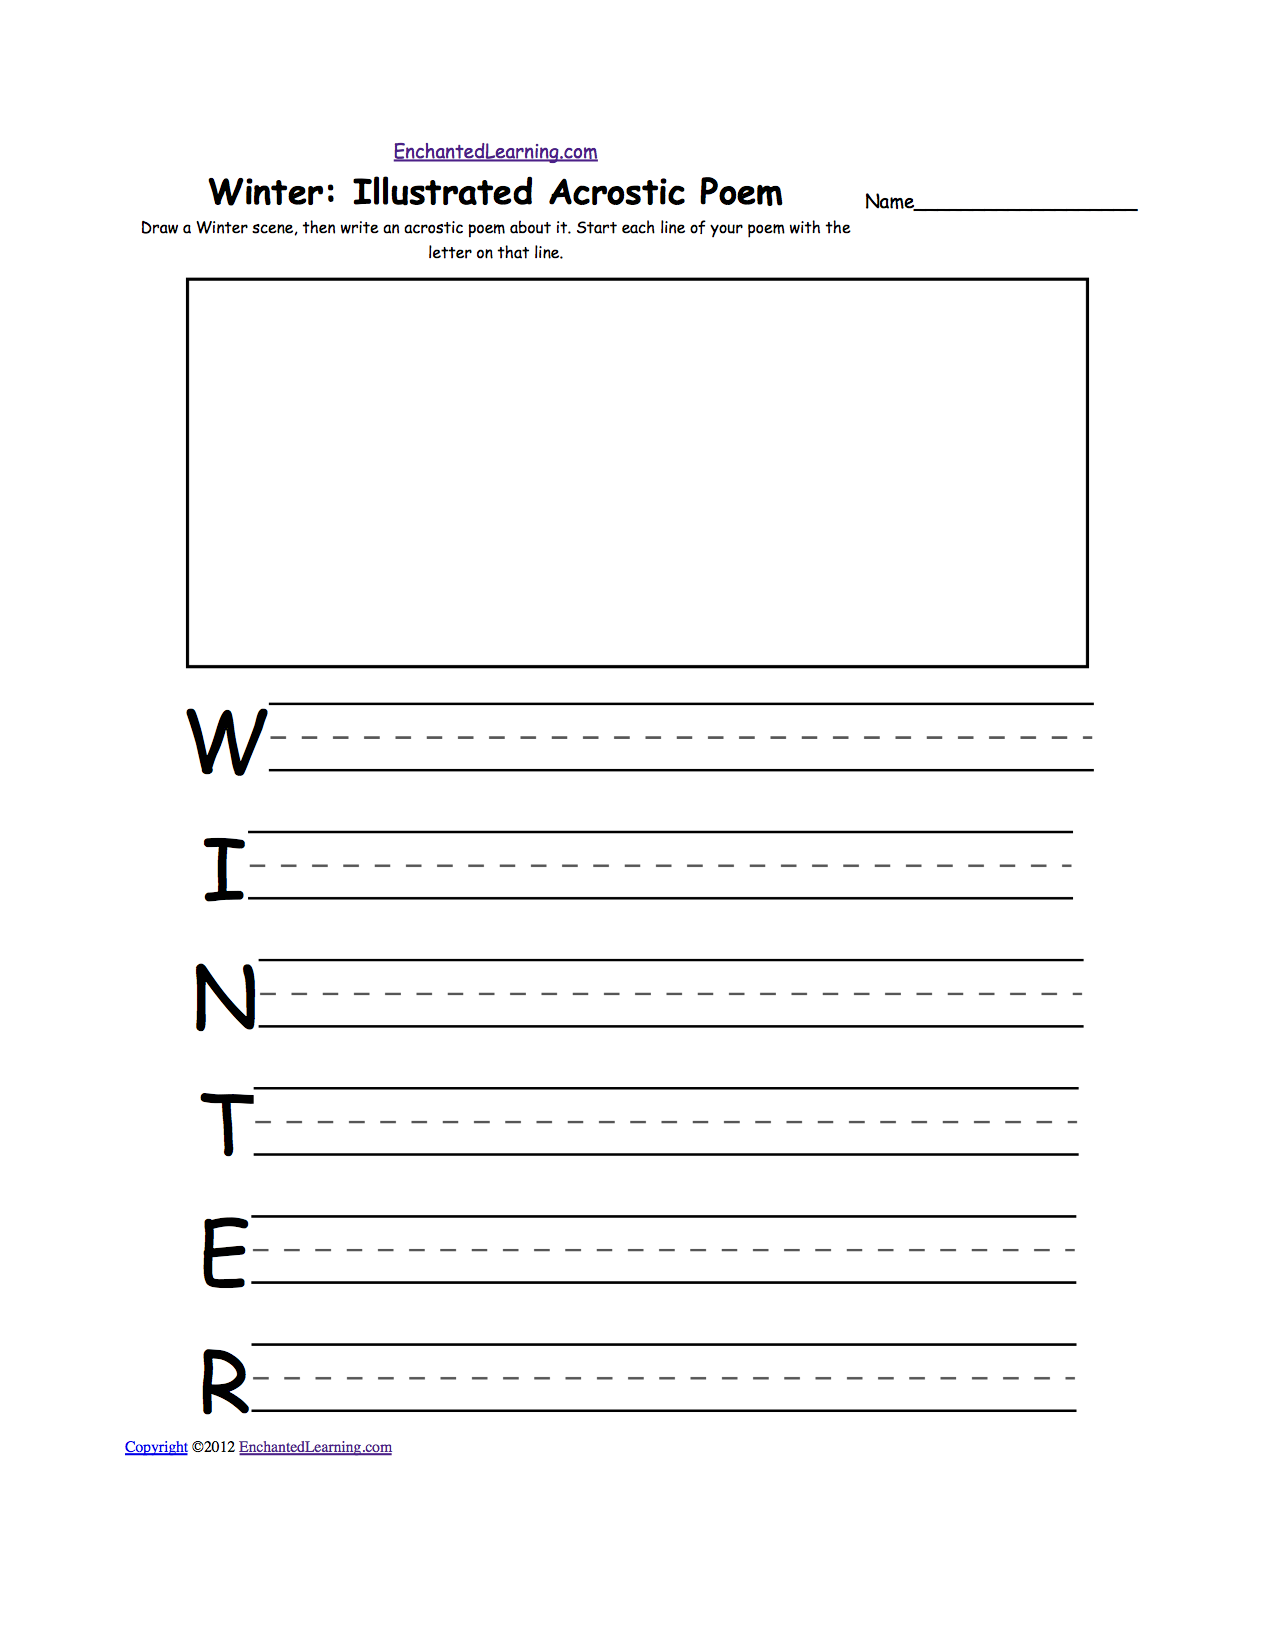 writing worksheets winter k theme page at enchantedlearning com draw a winter scene then write an acrostic poem about it start each line of your poem the letter on that line